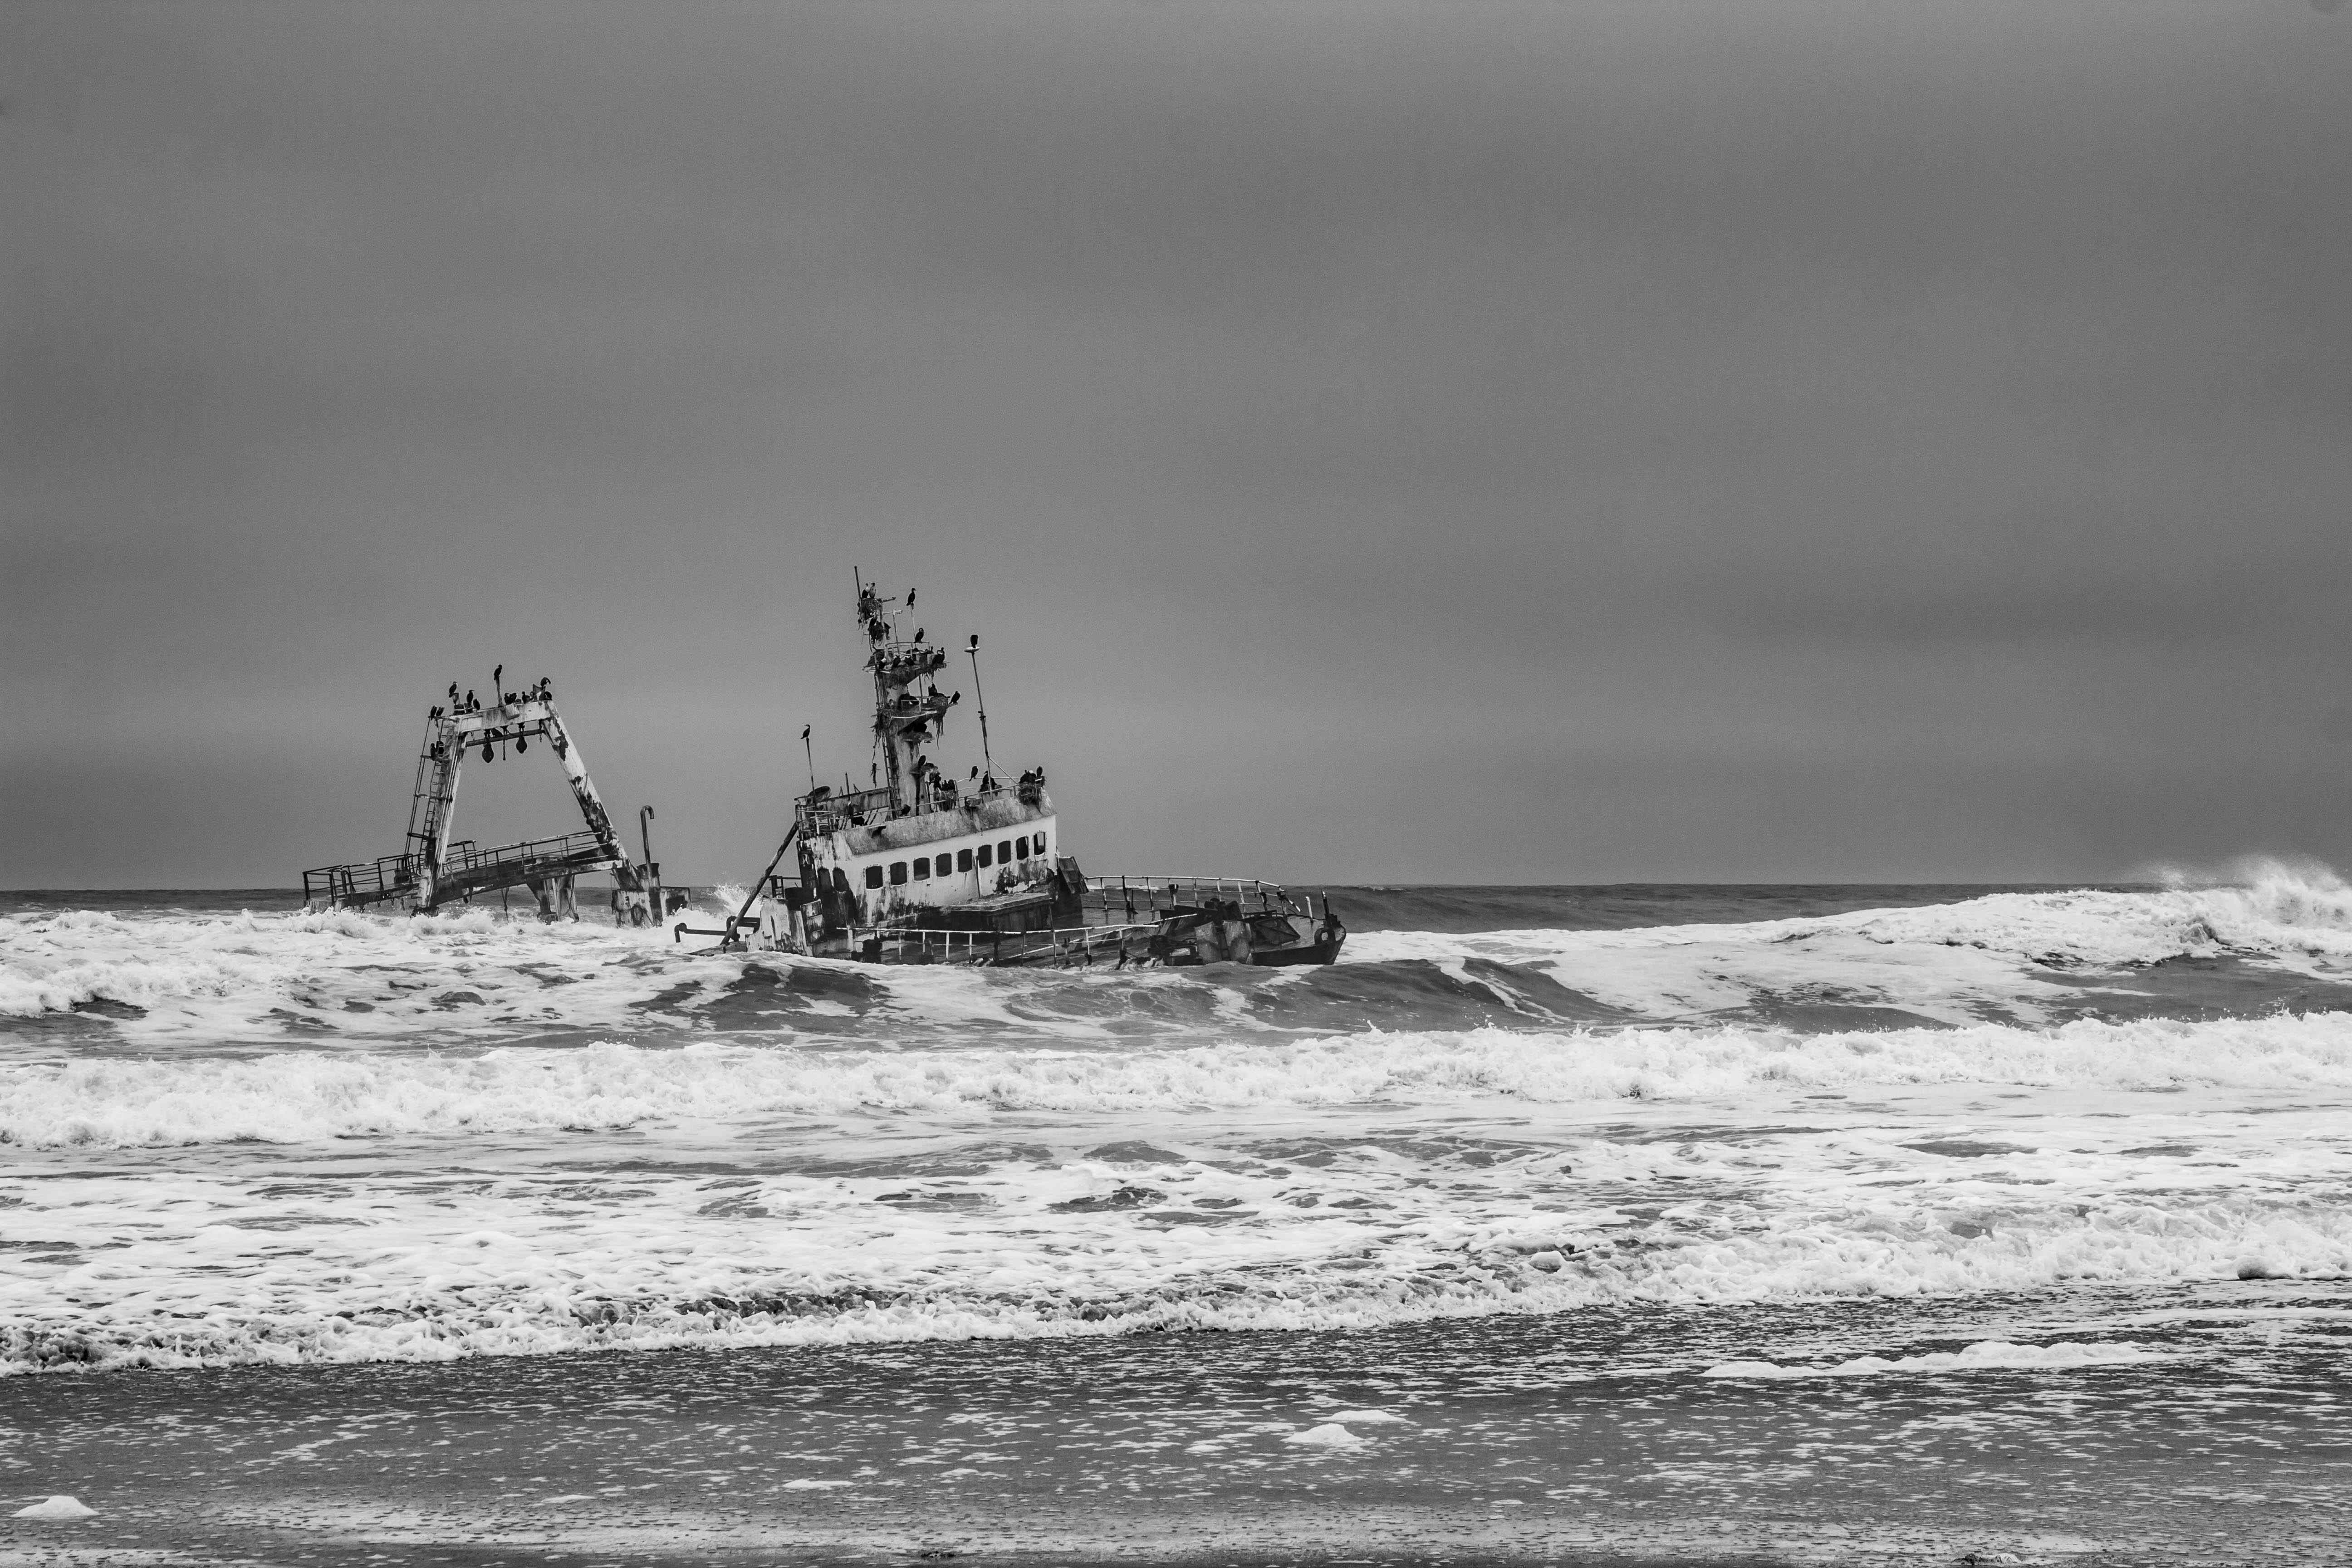 black and white shipwreck in the water on a rough day